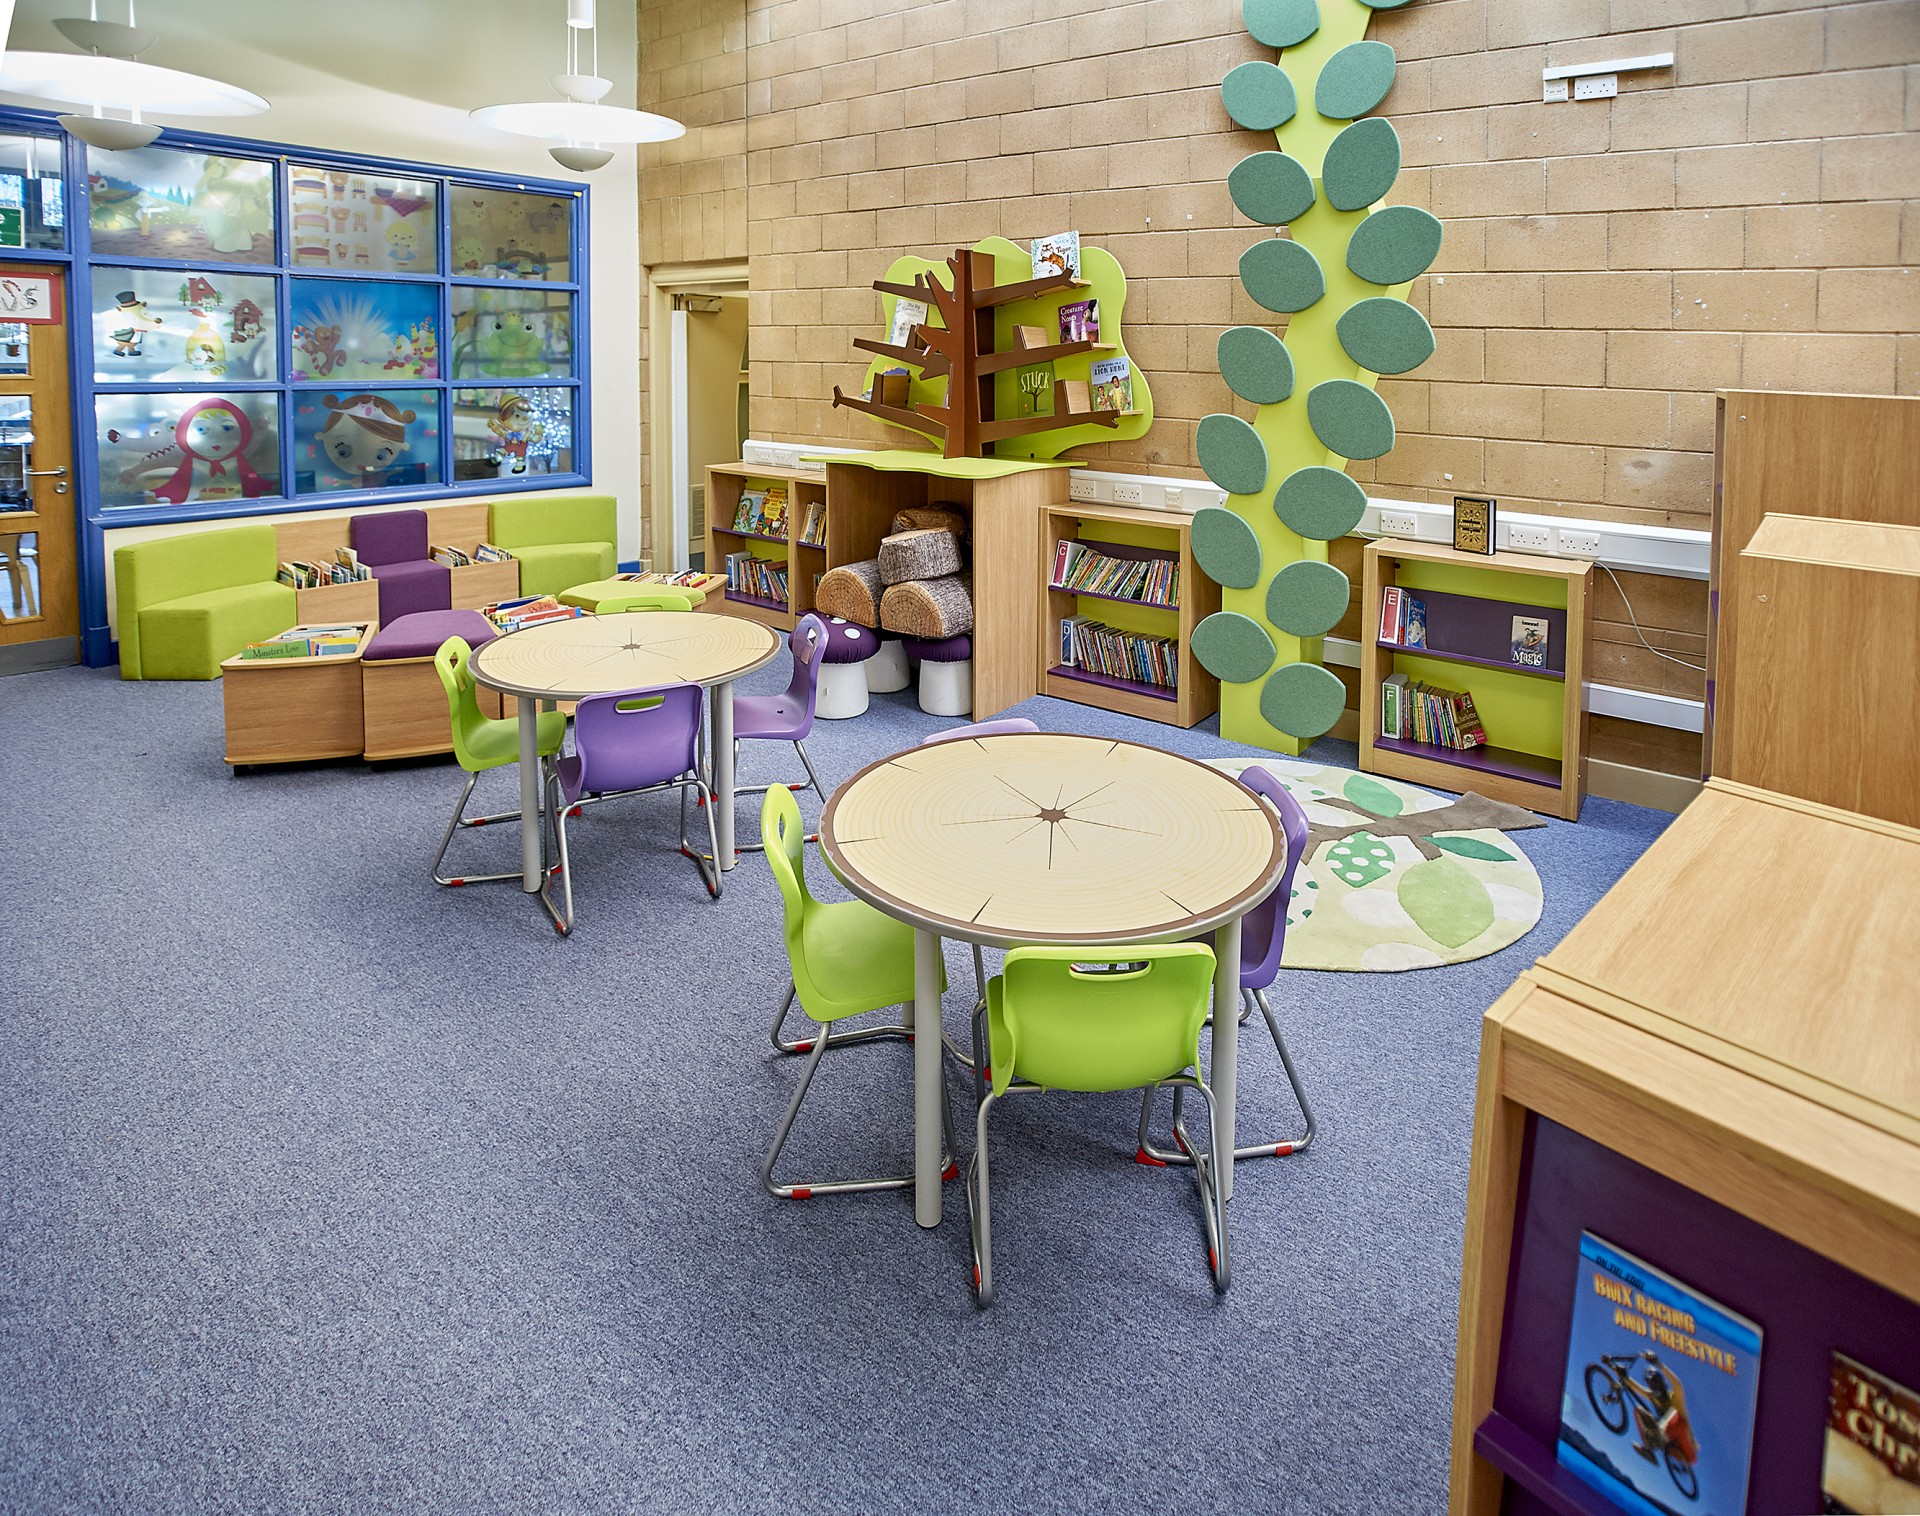 an image for Halton Lodge Primary School